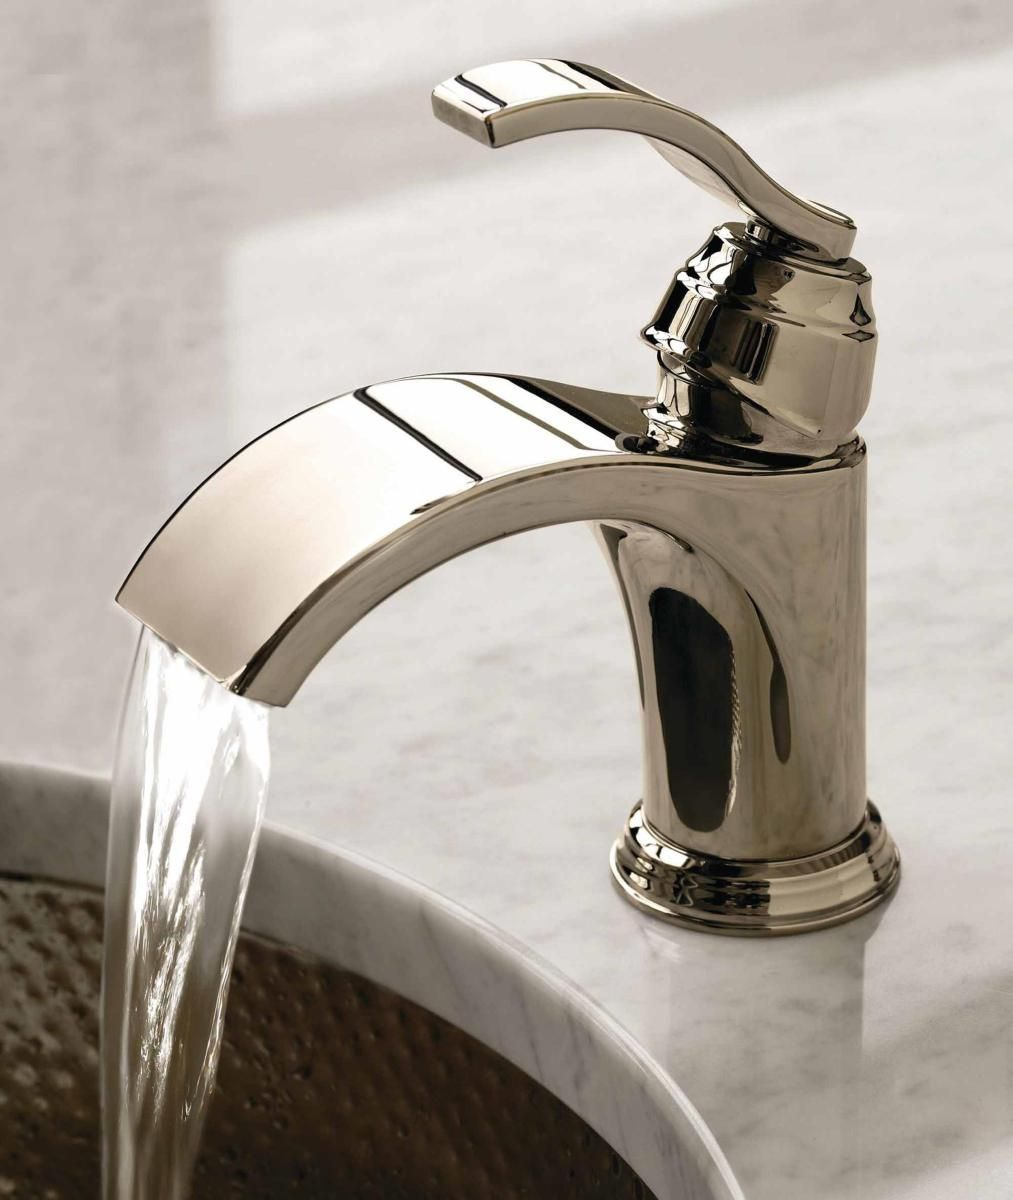 Faucets At Lowes To Make Refreshing Changes To Your Bath And Kitchen Ideas 23 Faucet Widespread Bathroom Faucet Rustic Bathrooms